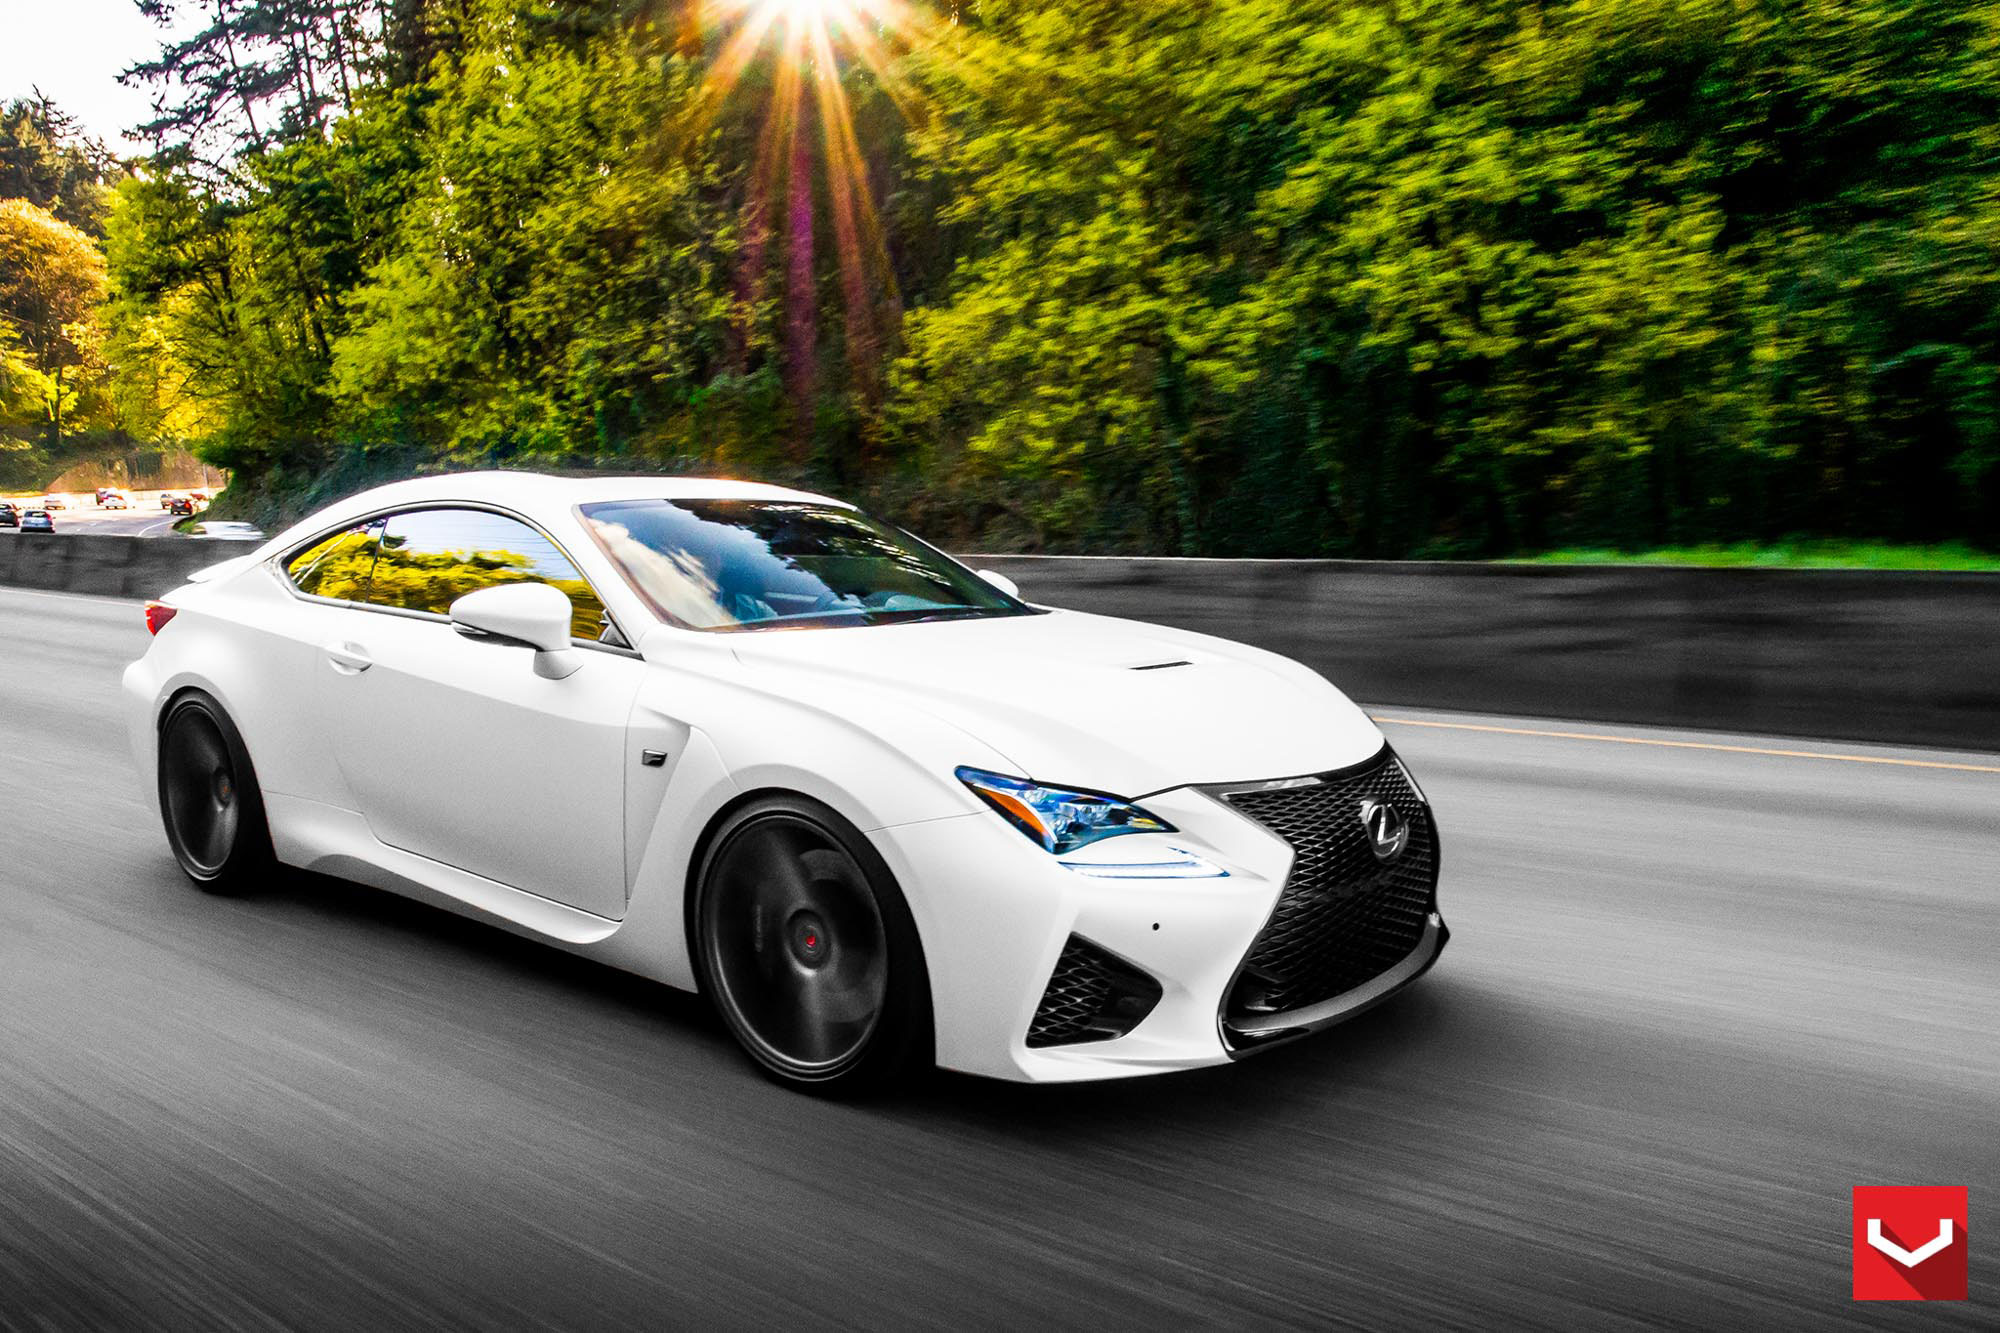 Tweaked: Lexus RC F in Matte White and Vossen VPS 311 ...